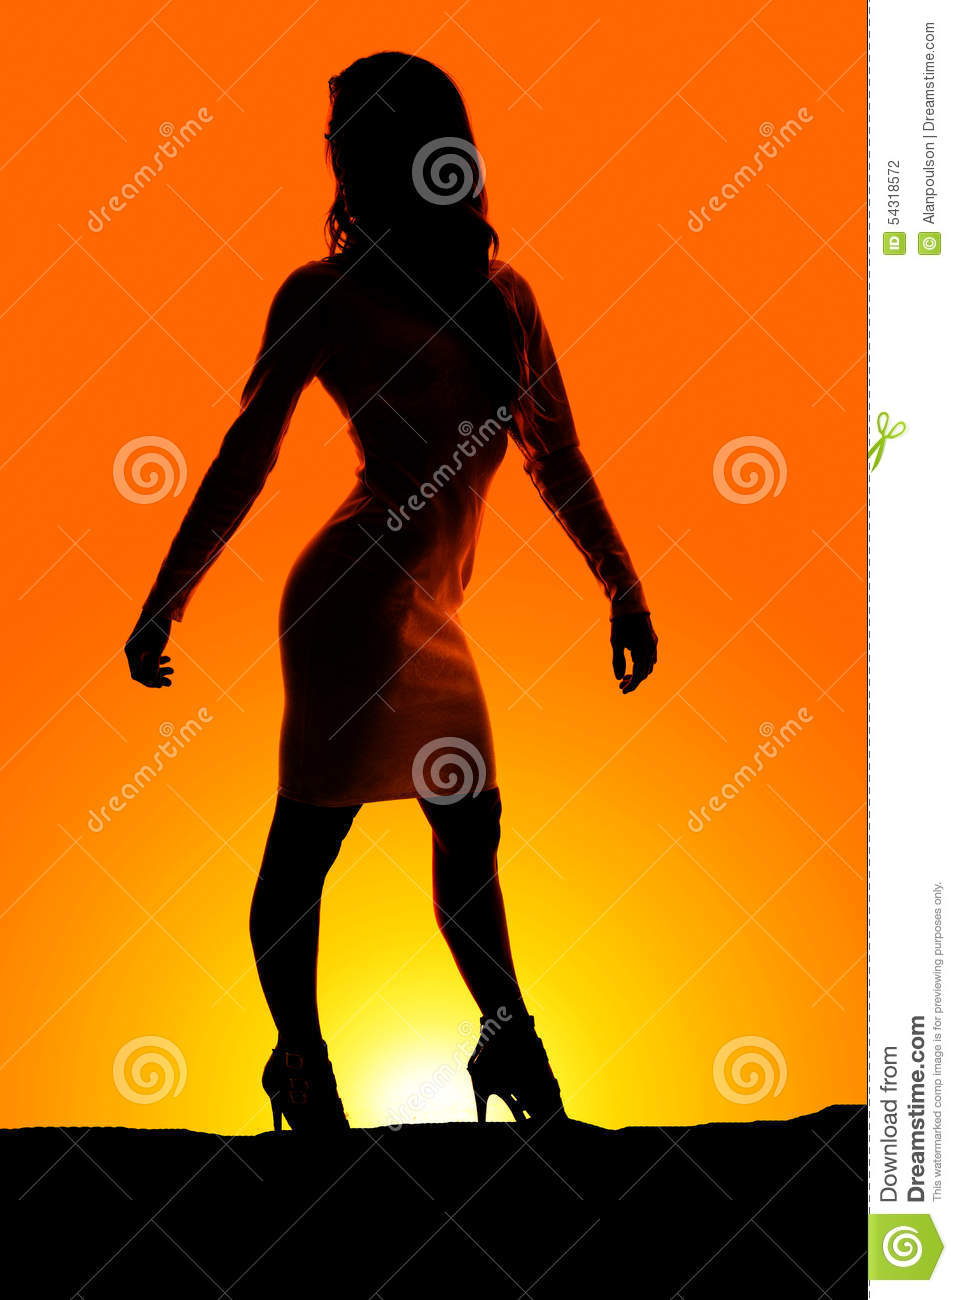 ... Dress silhouette of a woman standing in a white dress look to side